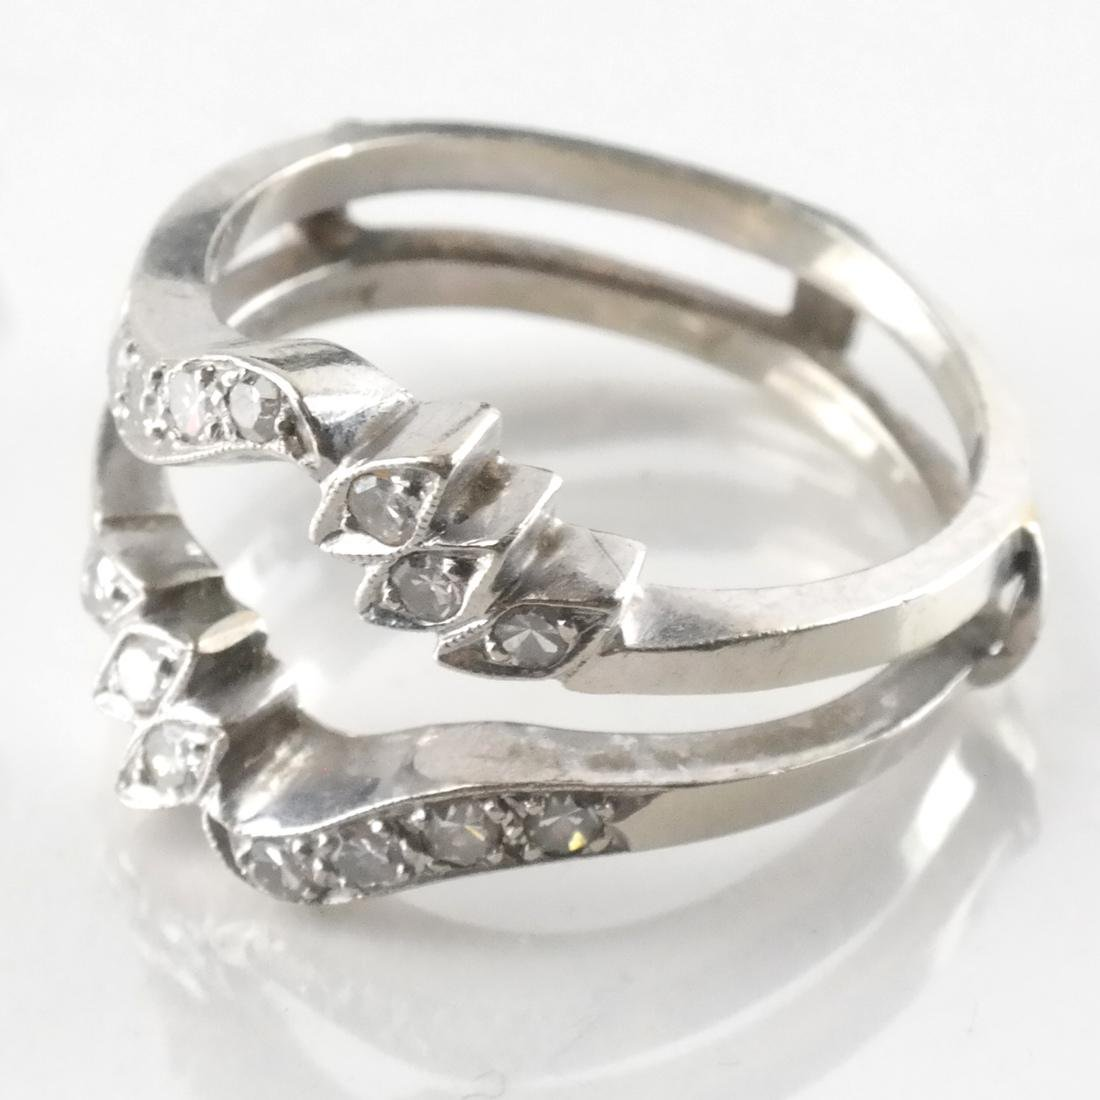 14k White Gold Inset Ring with Diamonds - 2